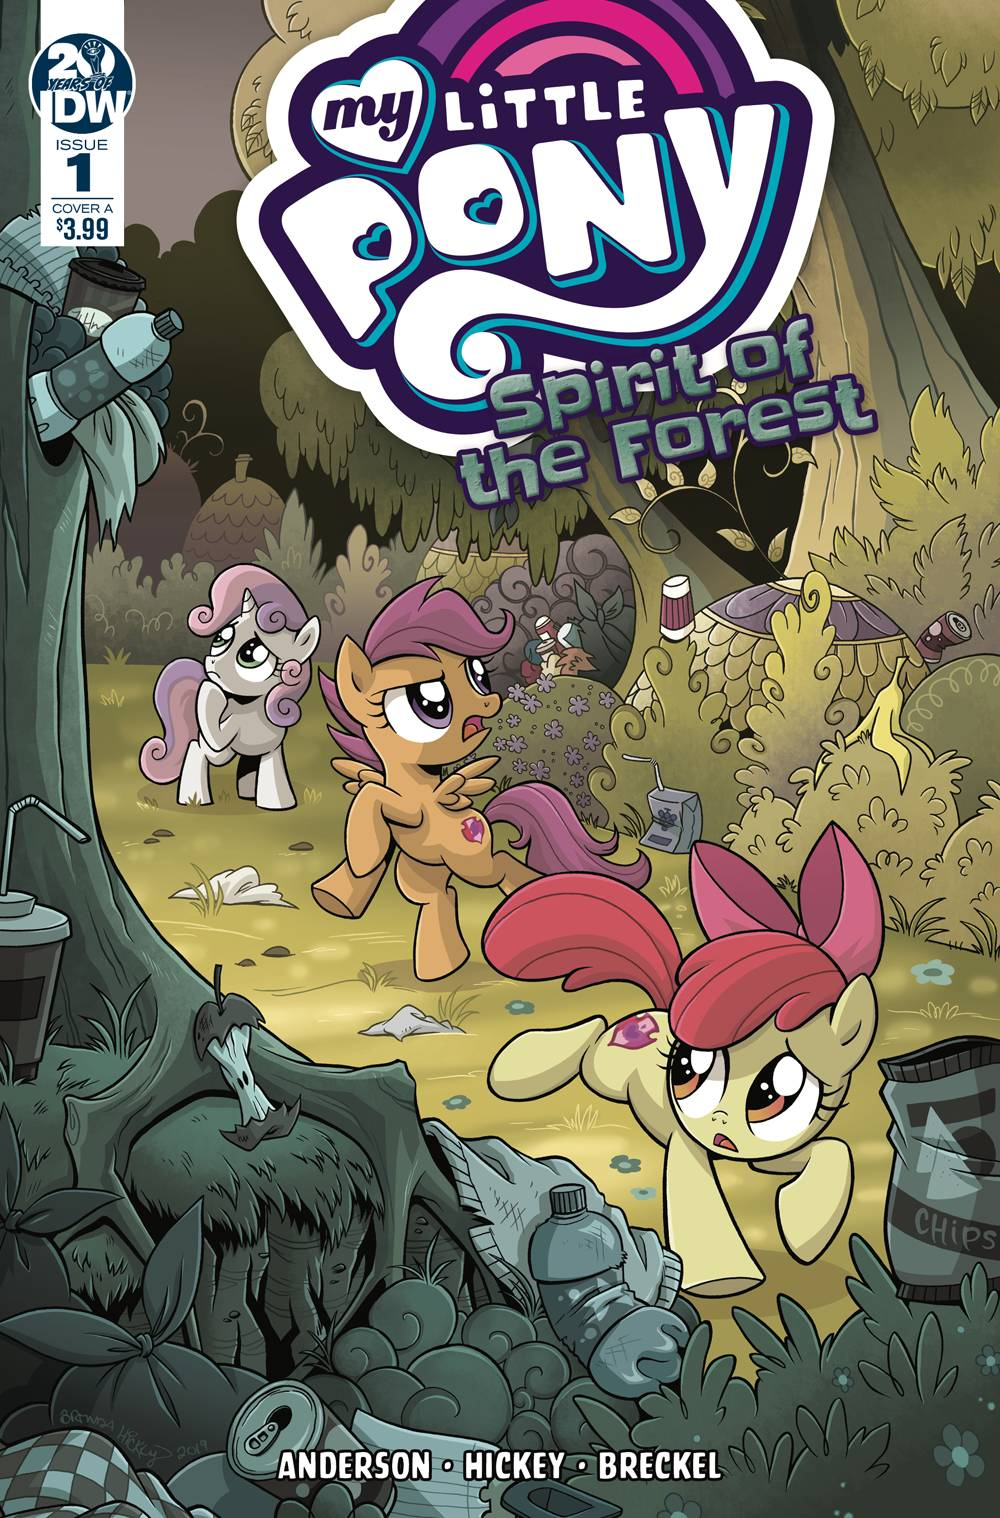 MY LITTLE PONY SPIRIT OF THE FOREST 1 of 3 CVR A HICKEY.jpg